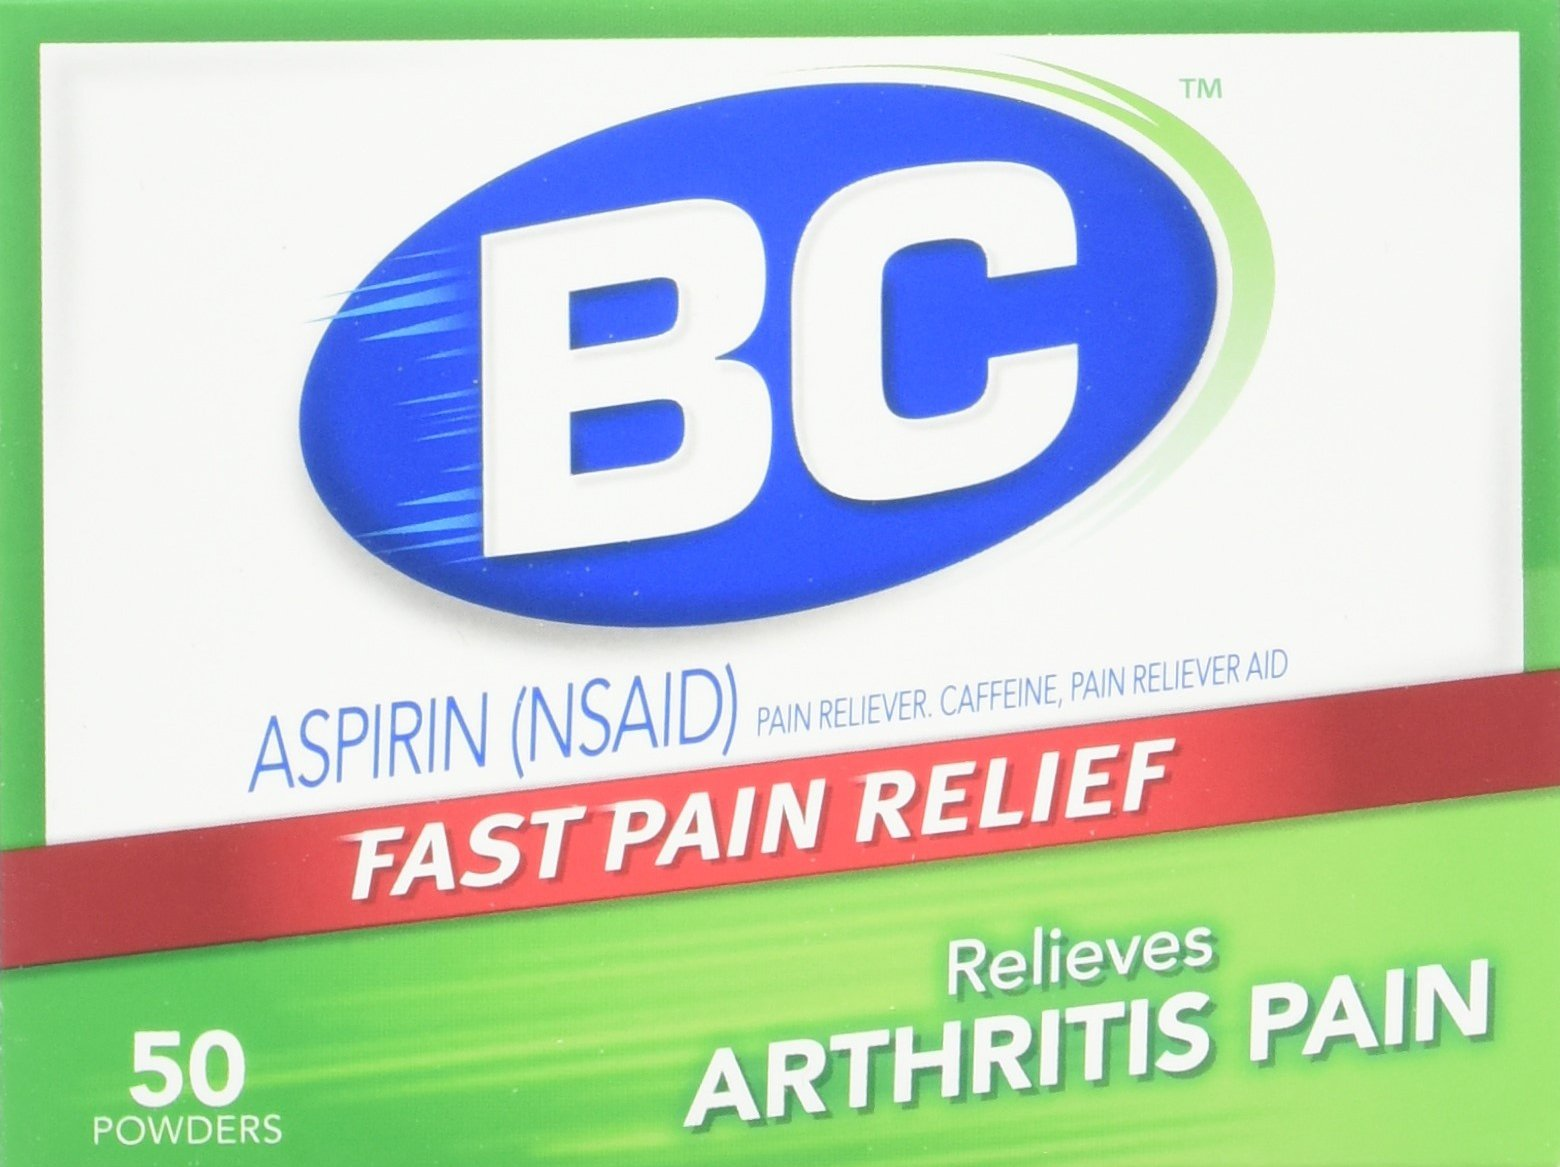 BC Arthritis Formula Pain Reliever Fever Reducer Powder, 50 Each (Pack of 2) by BC